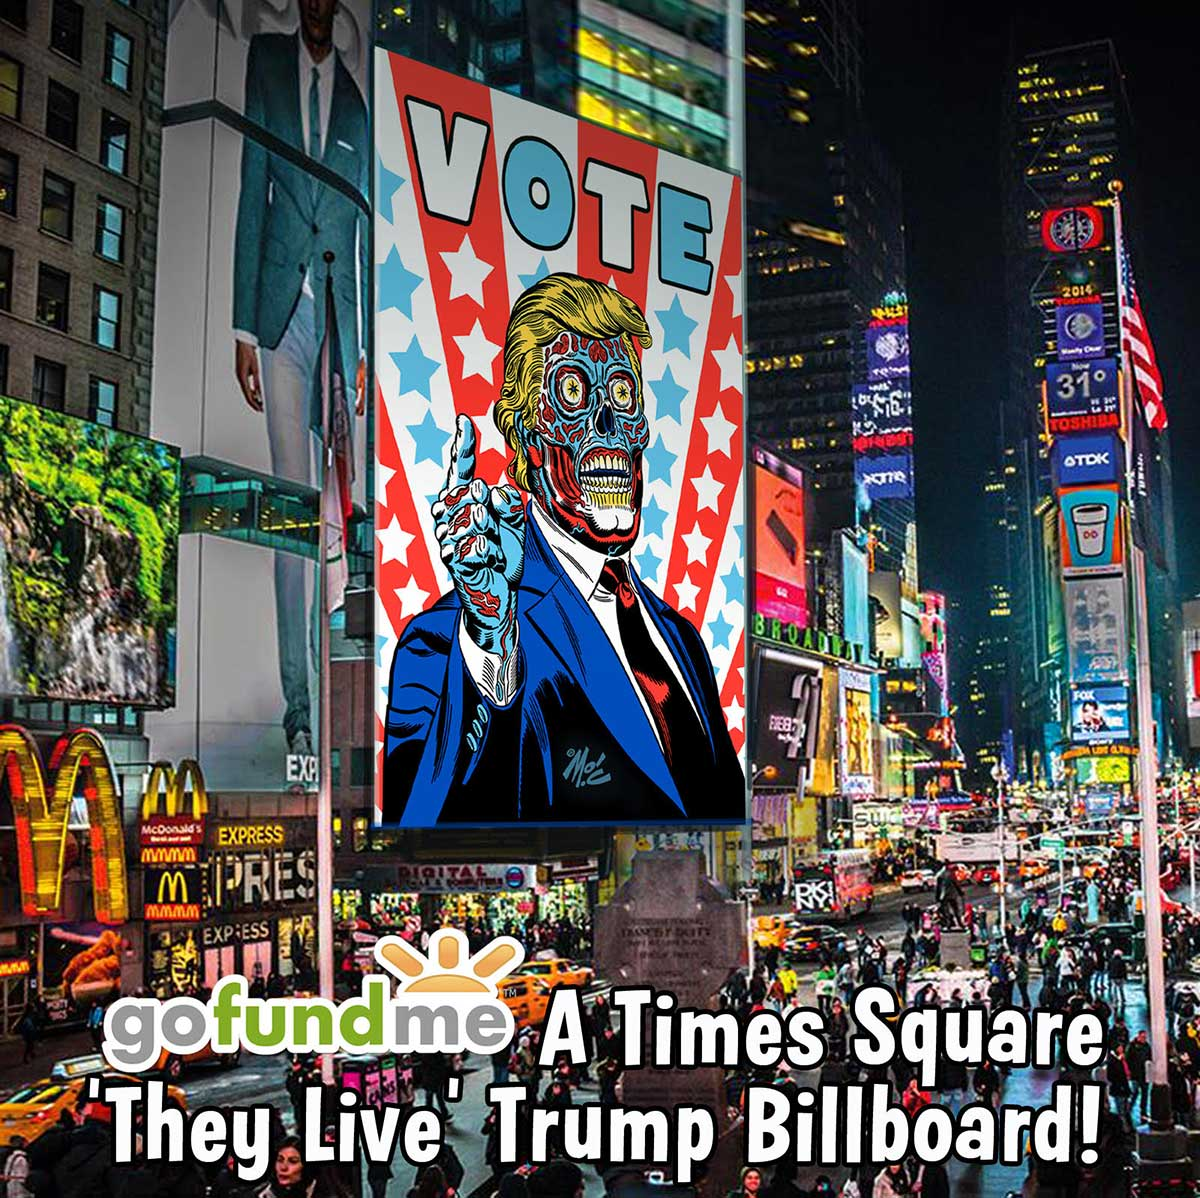 Artist Mitch O'Connell (not Moscow Mitch McConnell) wants to erect his famous Trump/They Live billboard in Times Square